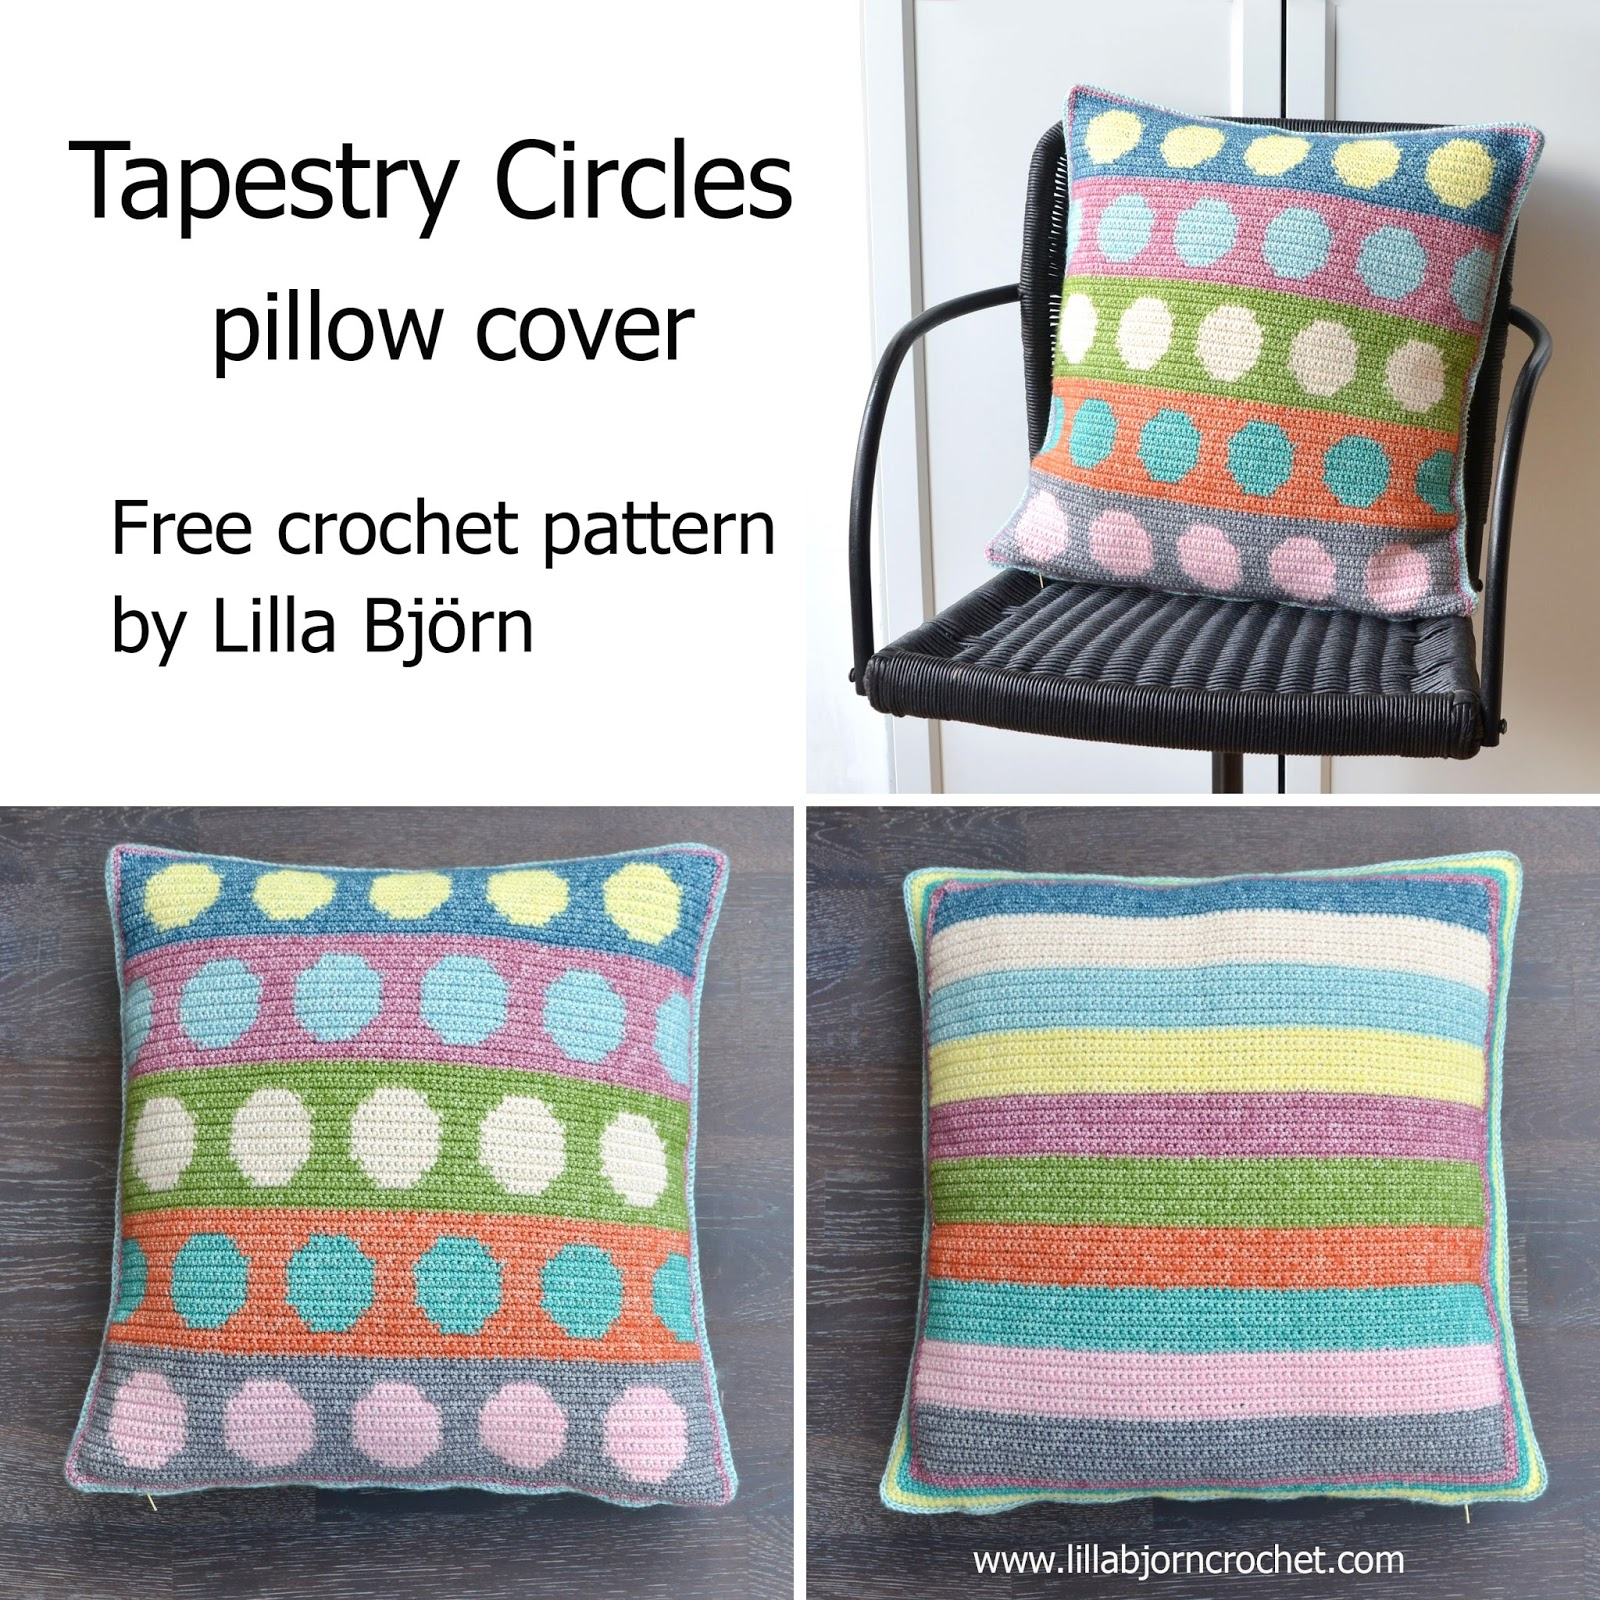 Tapestry circles pillow free crochet pattern lillabjrns crochet pillow cover with colorful circles made in tapestry crochet free pattern by lilla bjorn bankloansurffo Gallery